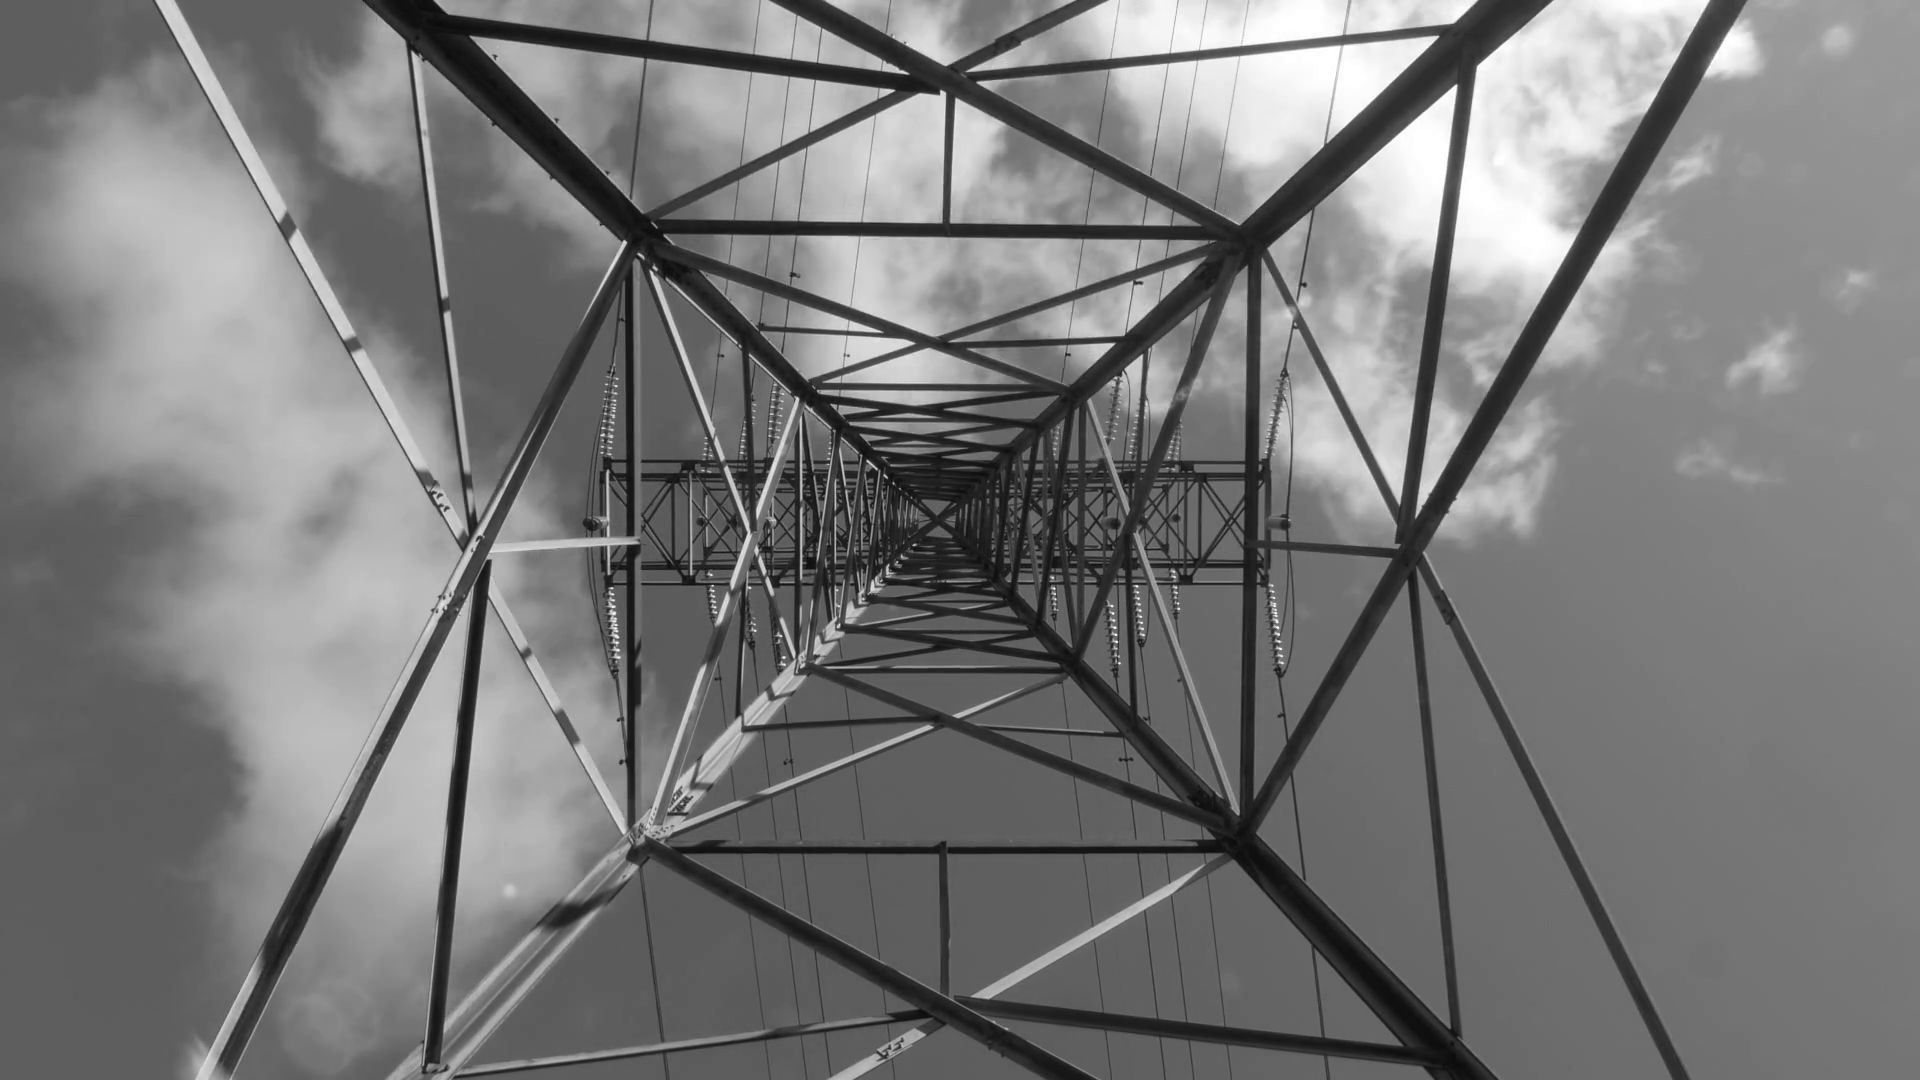 Underneath a hydro-electric tower, looking up. Time lapse clouds ...